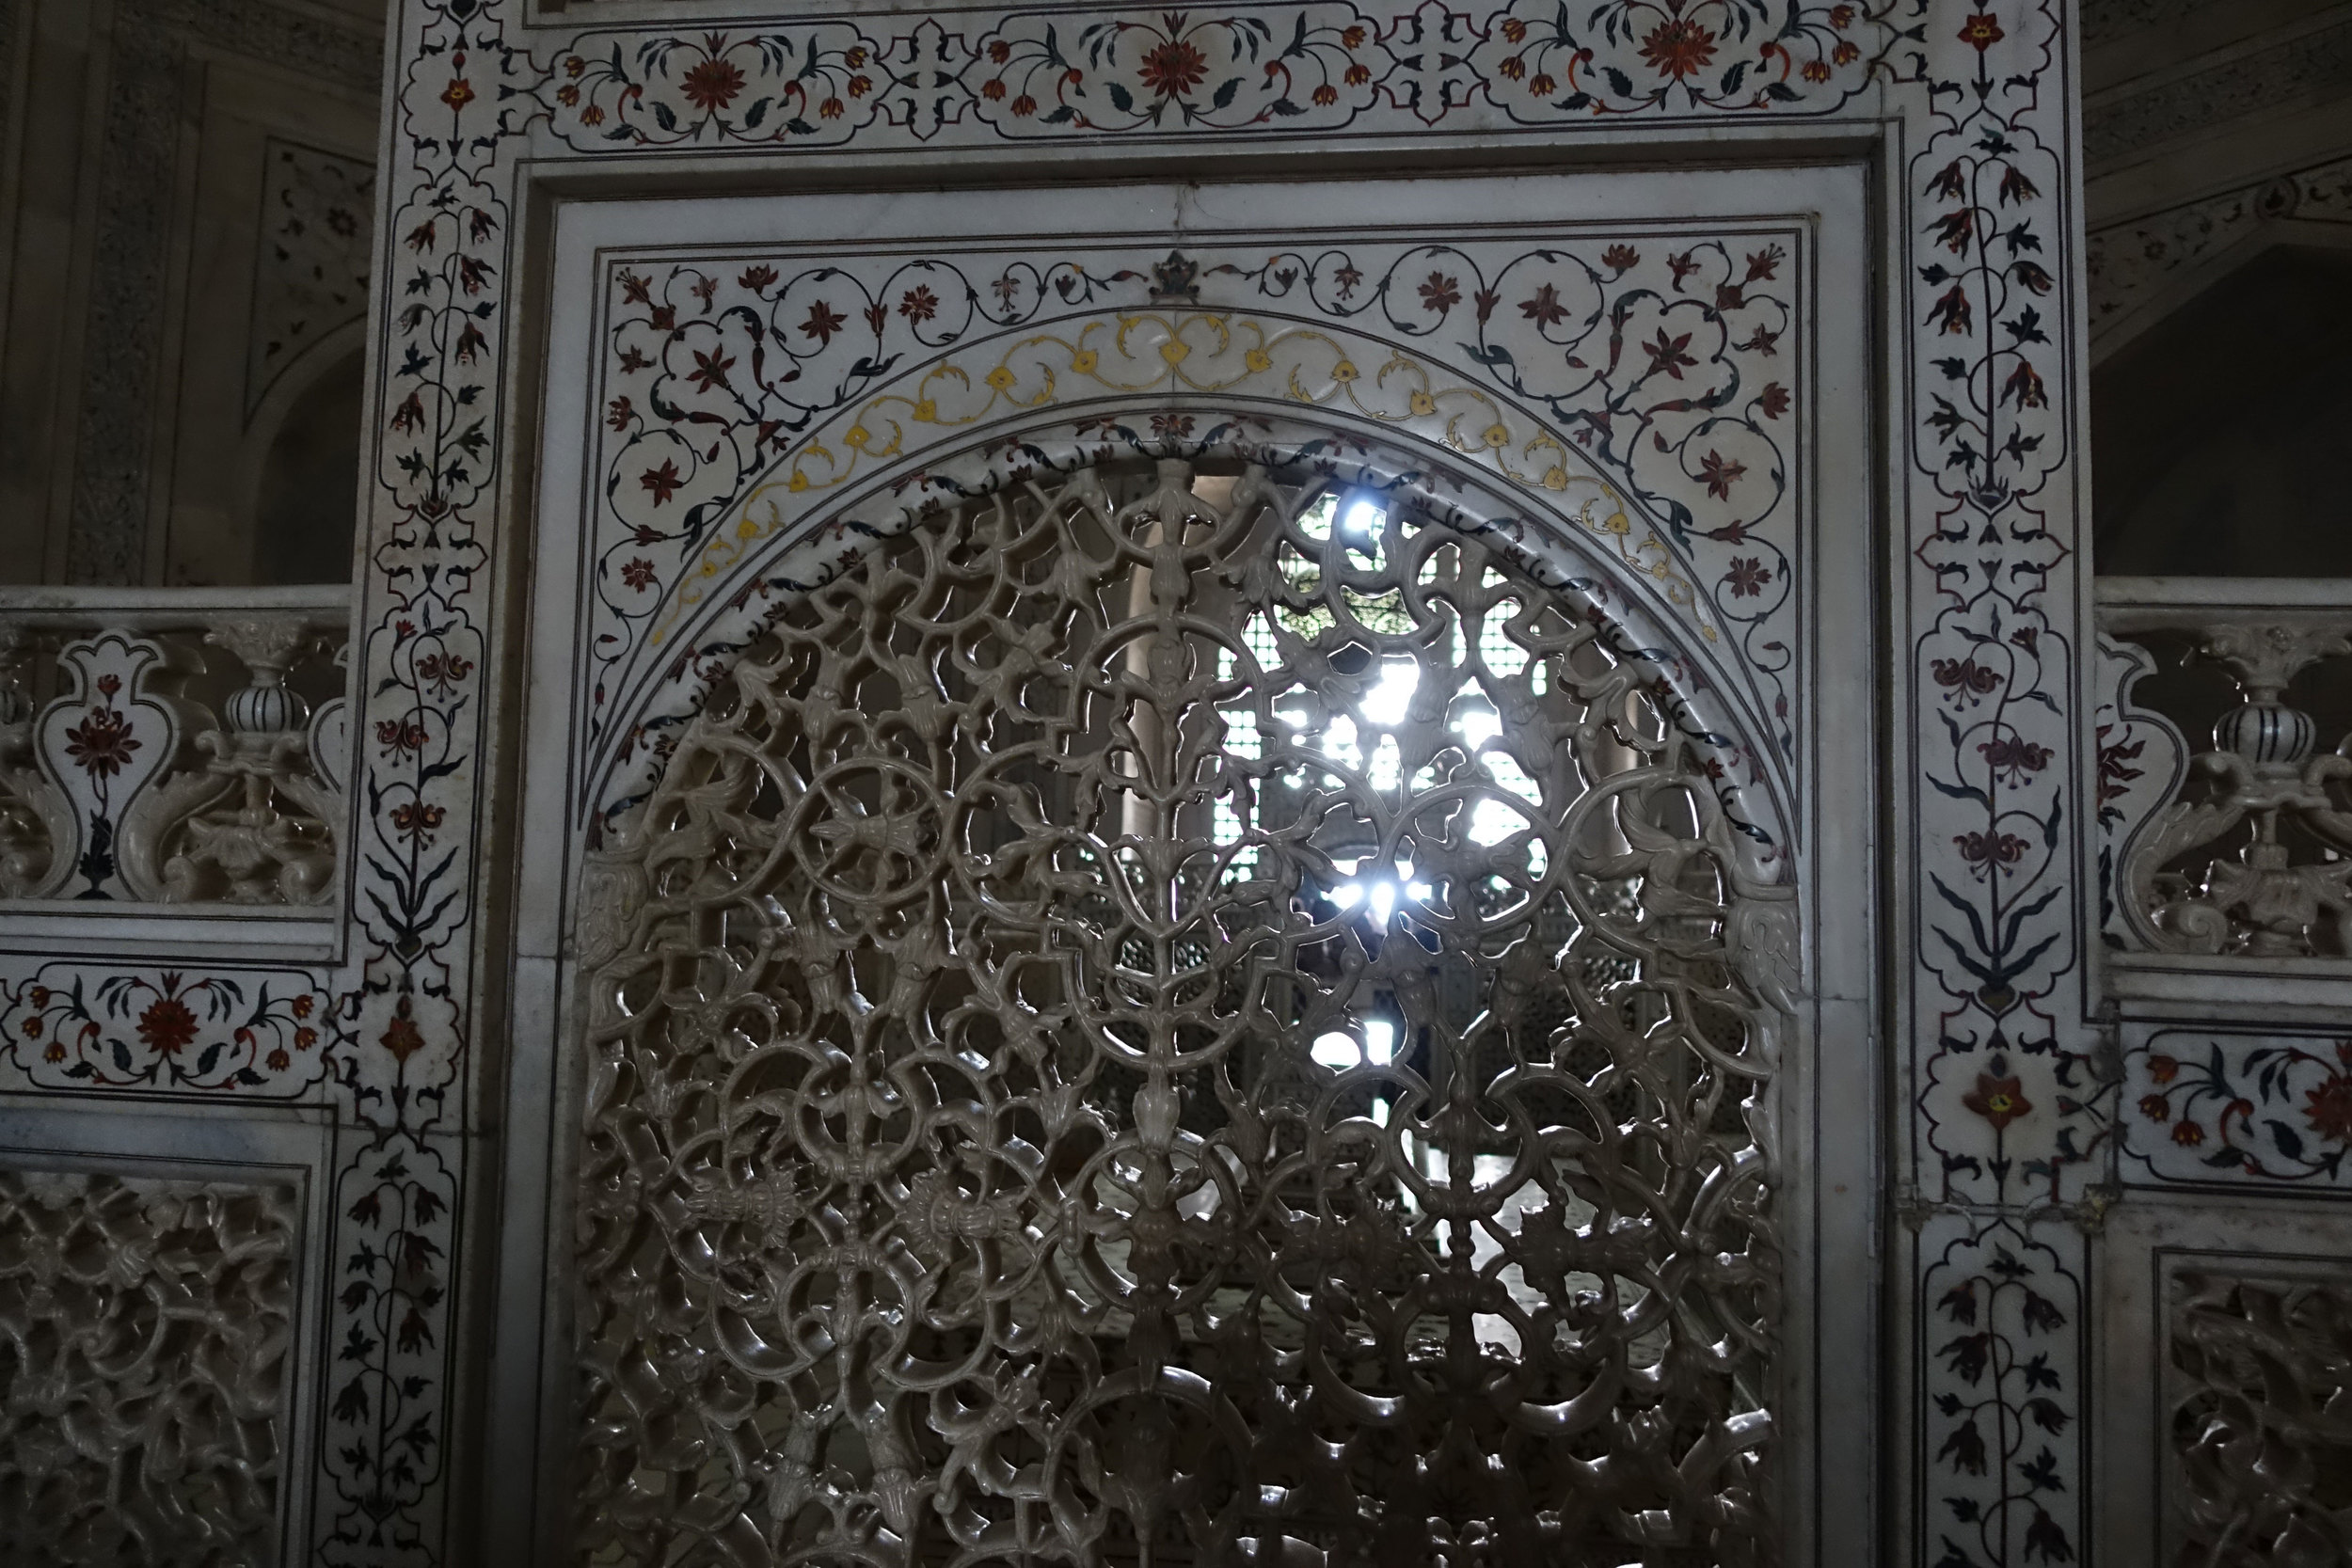 The Crescent moon a muslim symbol is situated on top of this panel